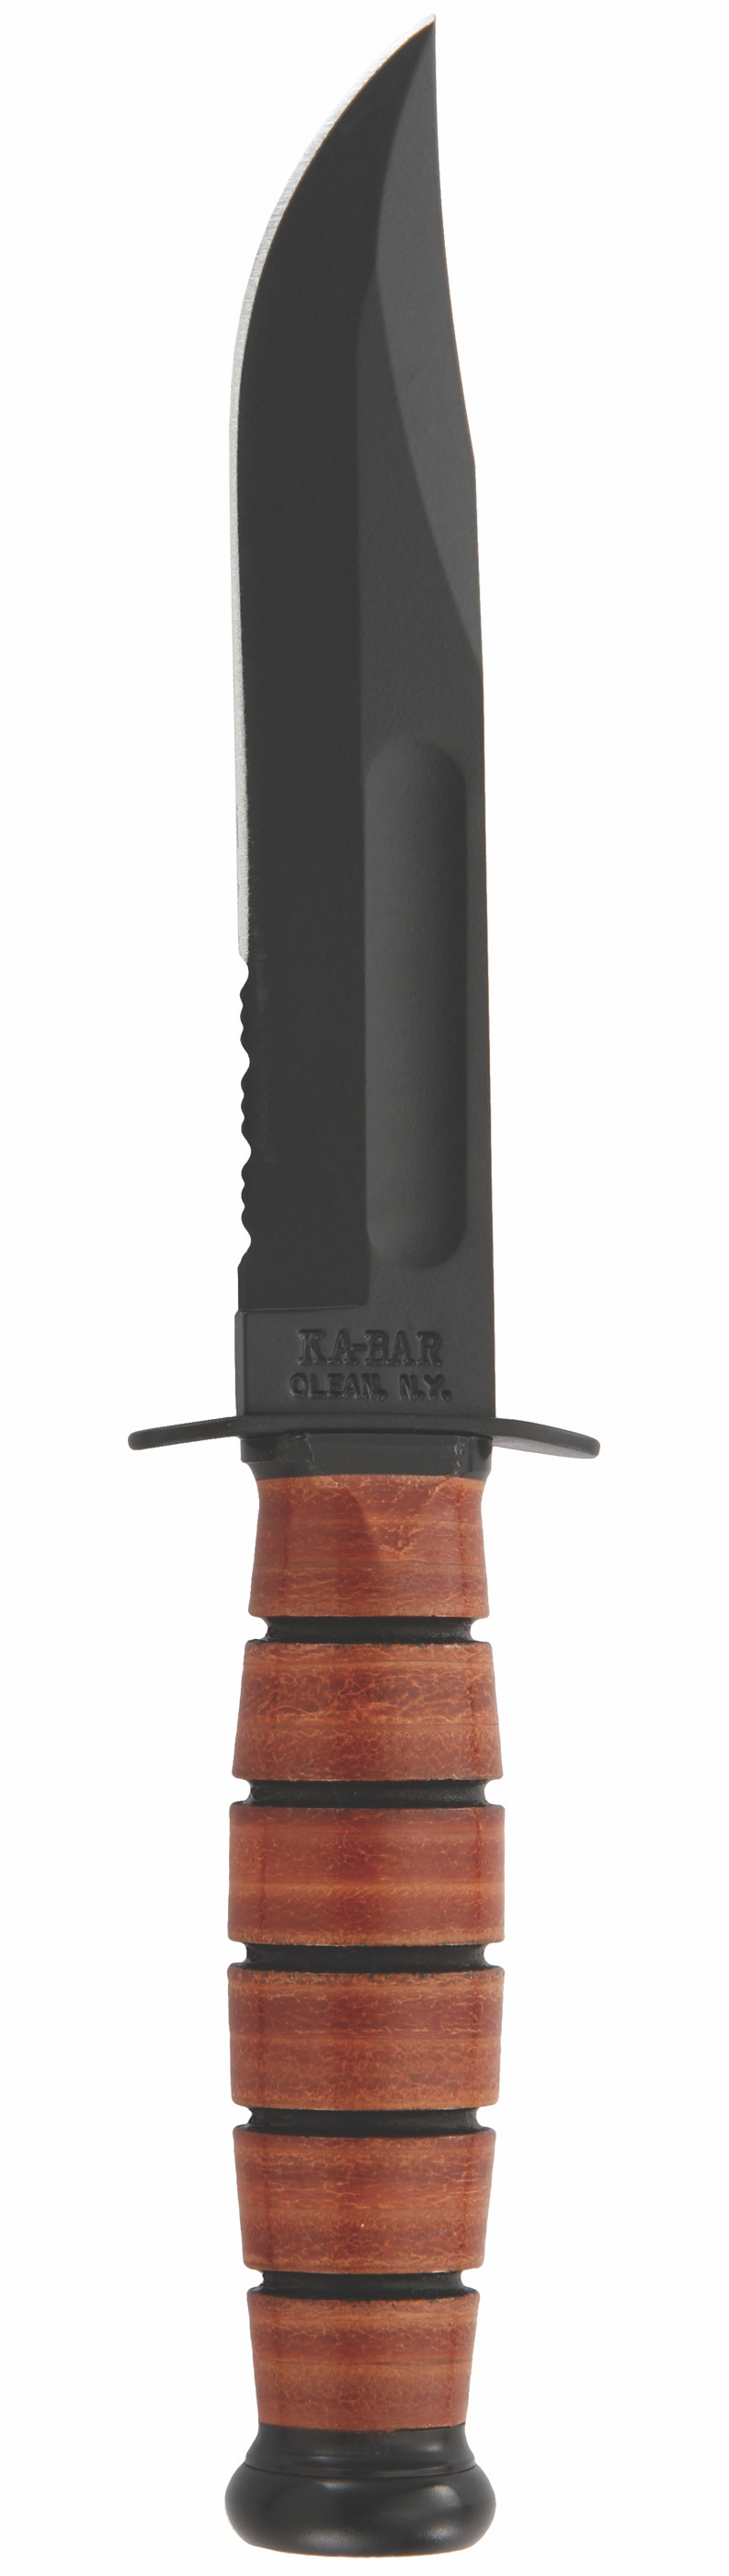 1261 - KA-BAR SHORT, USA, BROWN LEATHER SHEATH, SERRATED EDGE